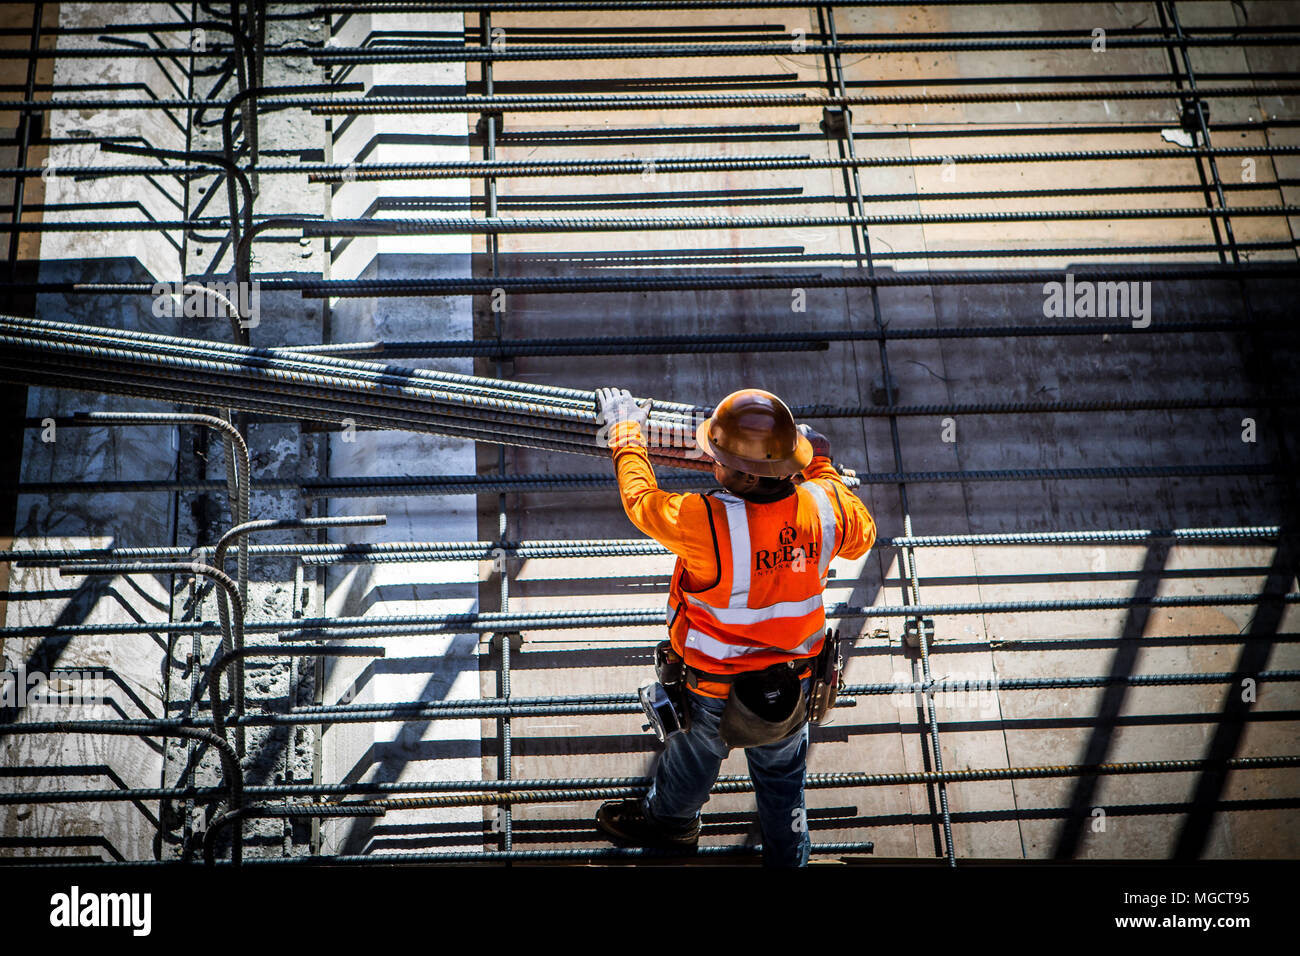 Worker lowering rebar into place in the Hostetter Trench of the BART to Silicon Valley Berryessa Extension project in San Jose, California Stock Photo